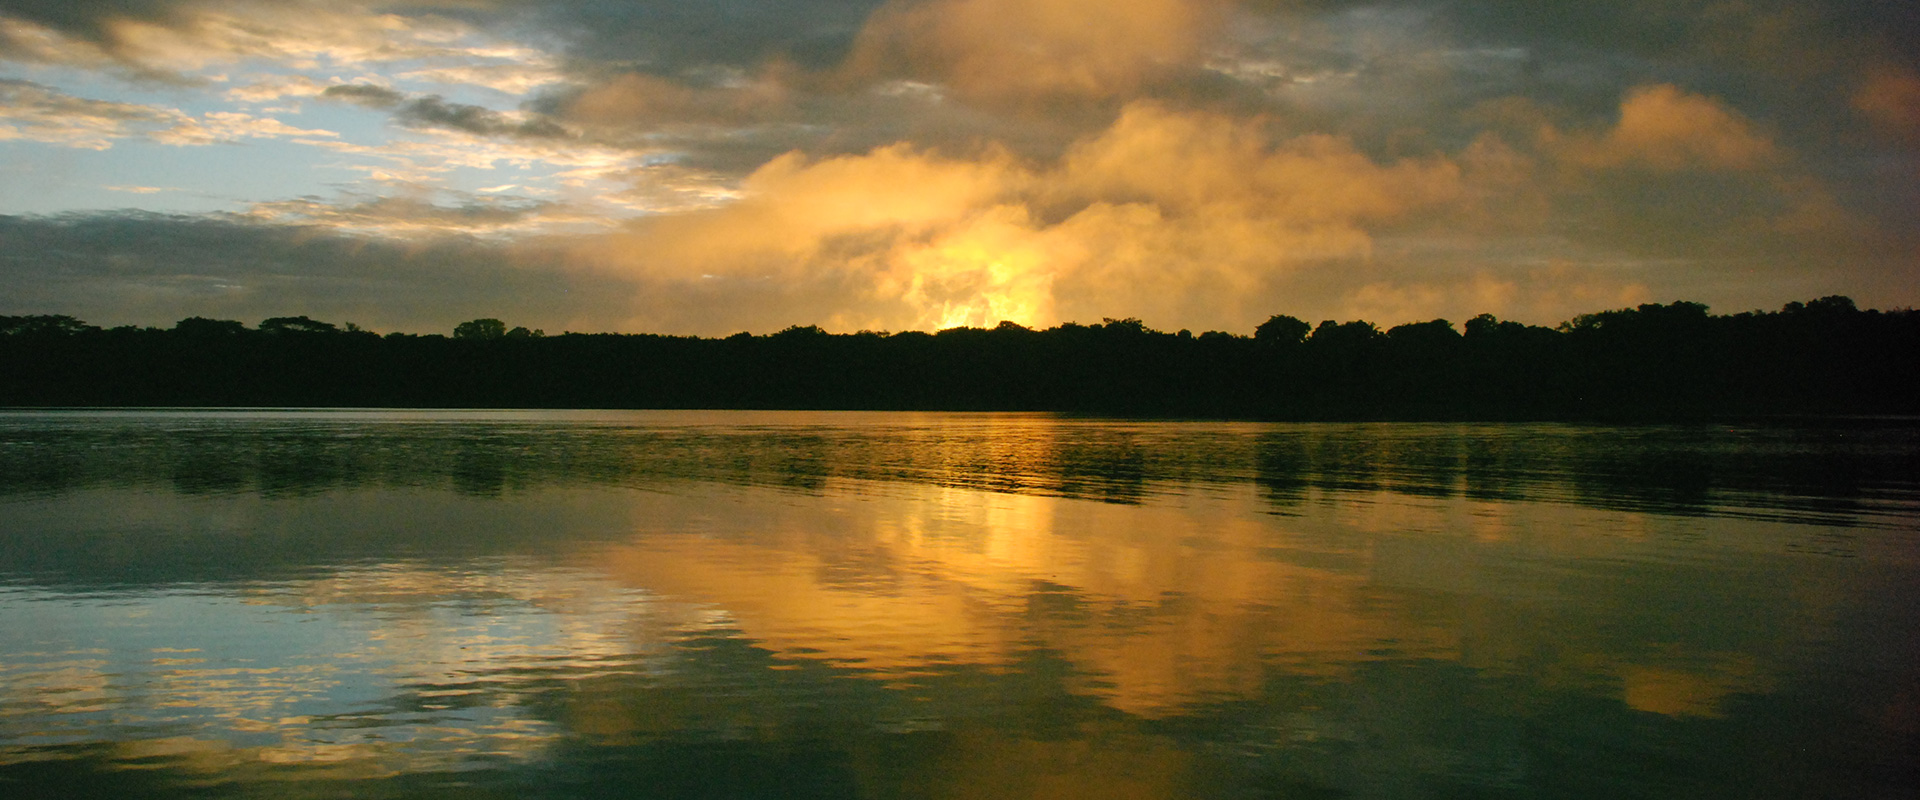 Napo River Sunset